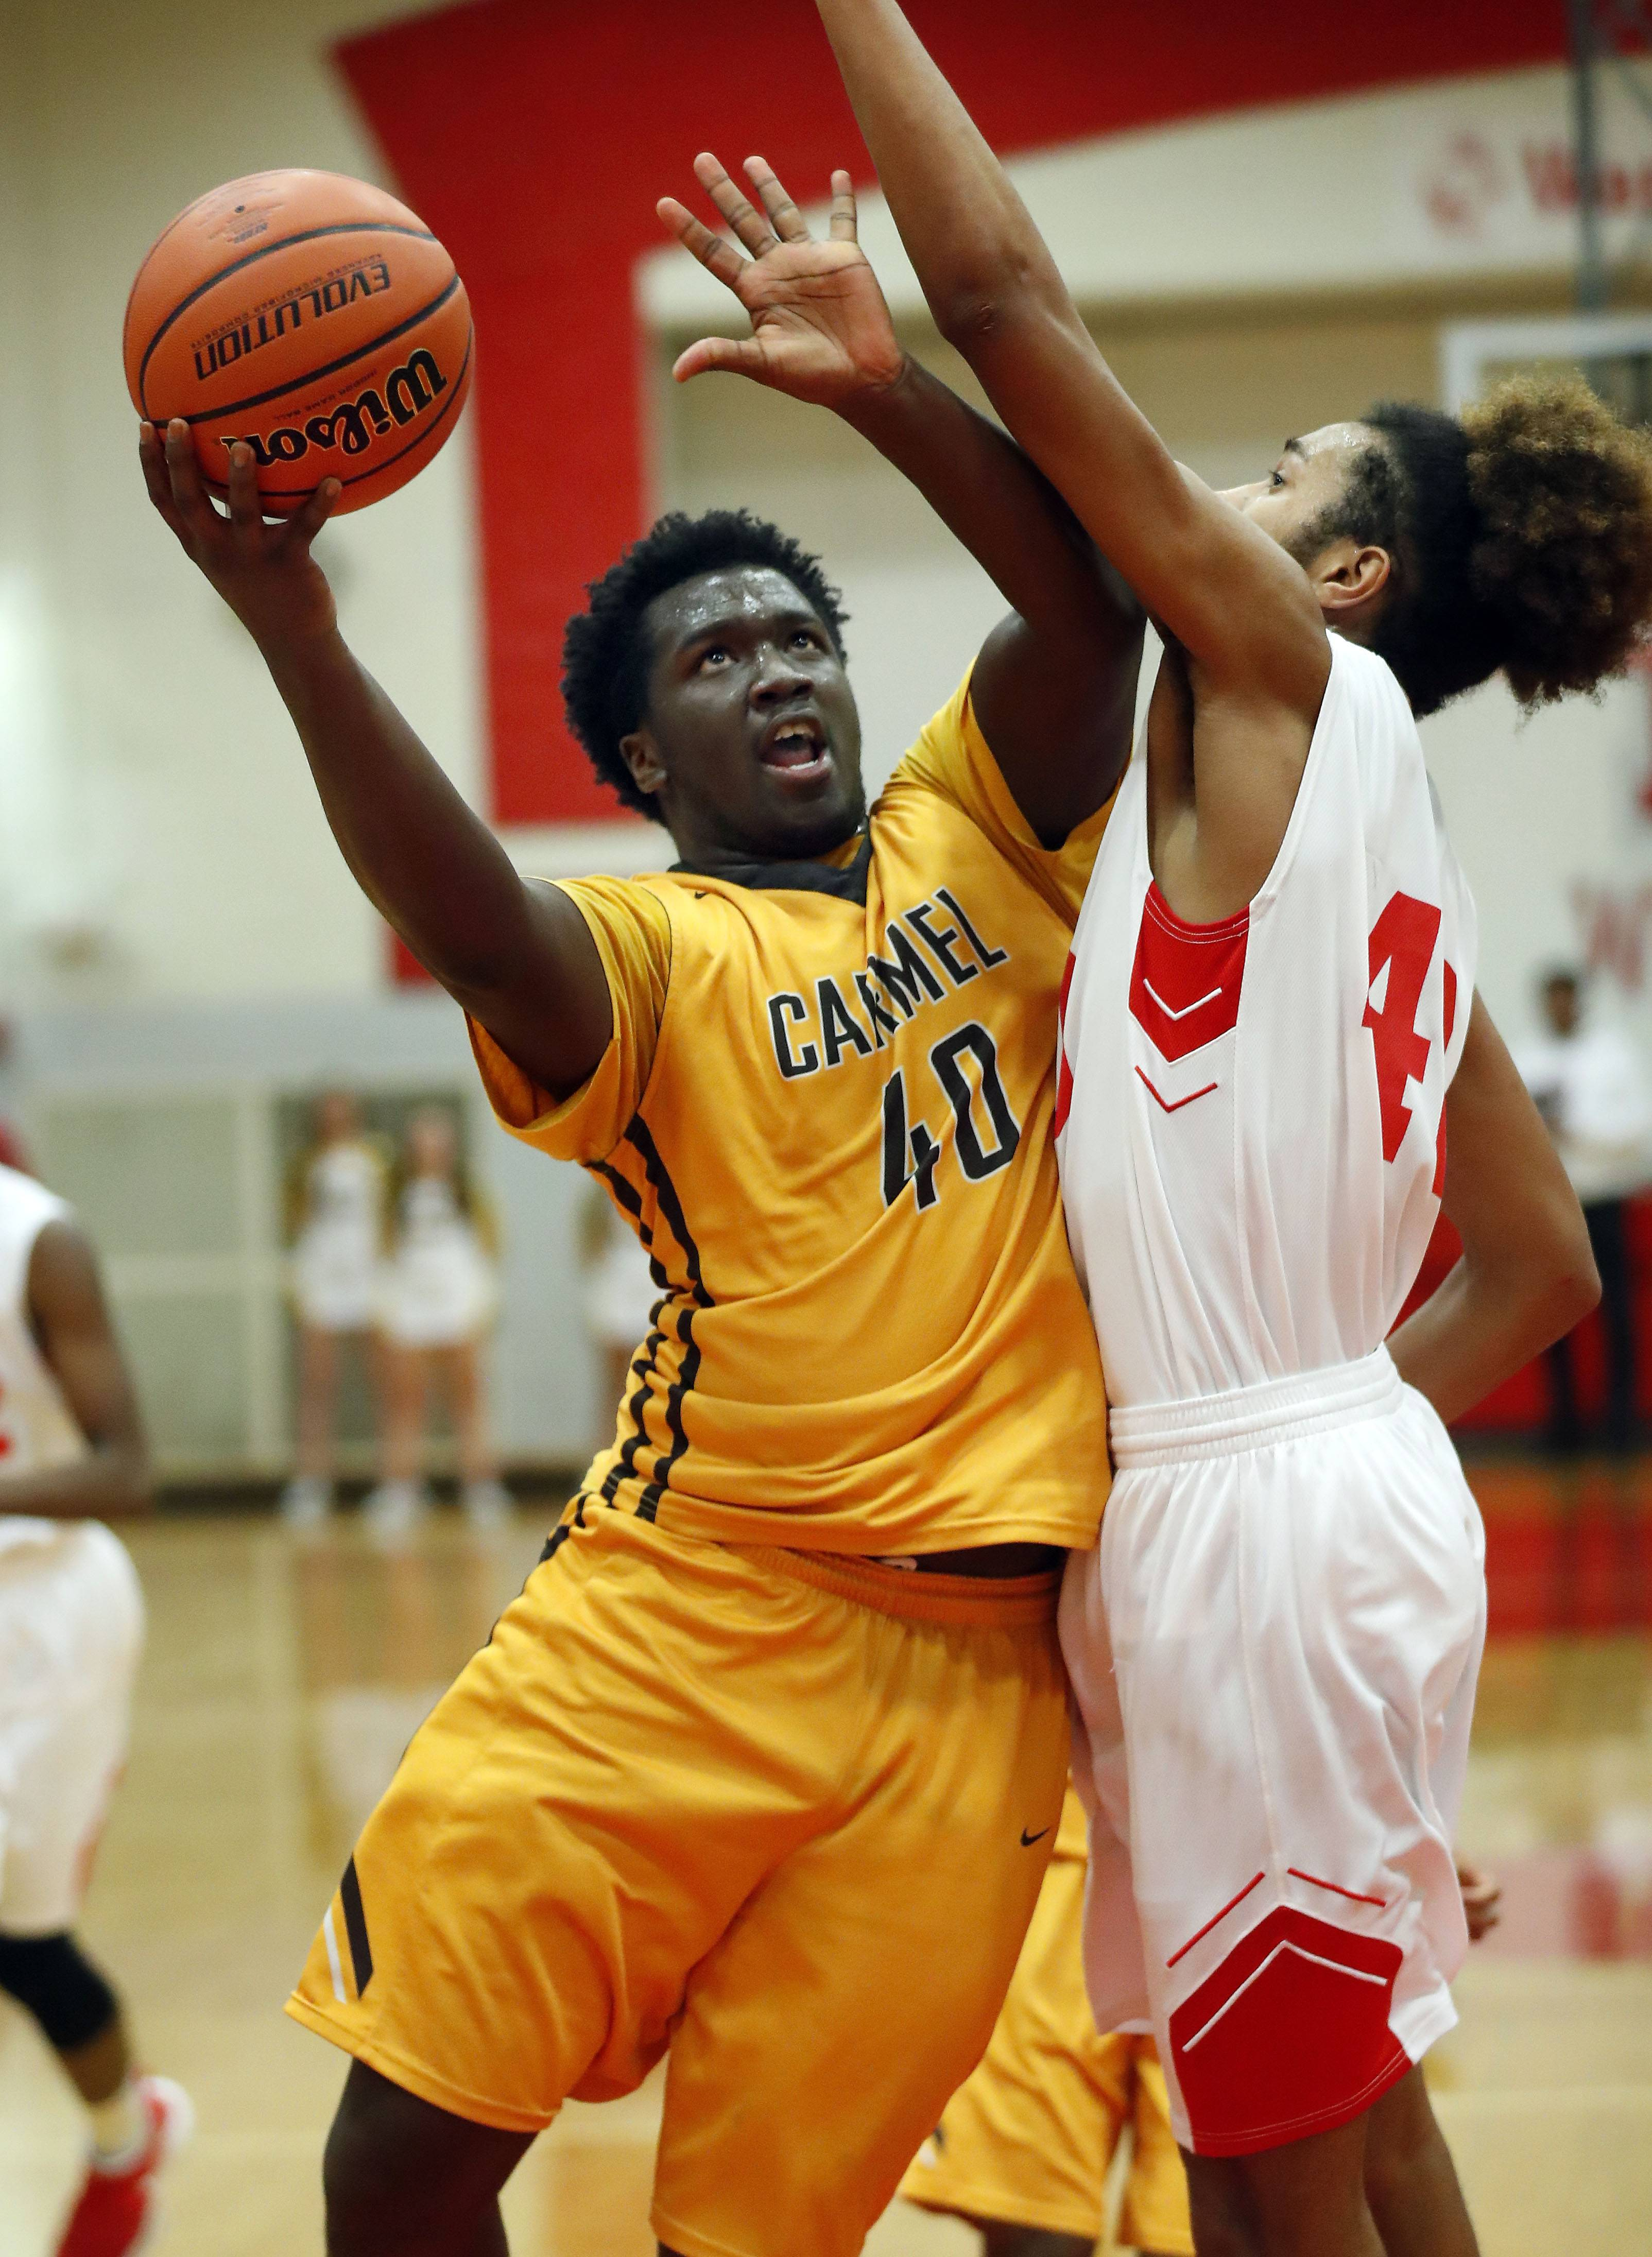 Carmel's Jalen Snell (40) drives on North Chicago's Raeshaun Samoa during Class 3A sectional semifinal play Wednesday at North Chicago.